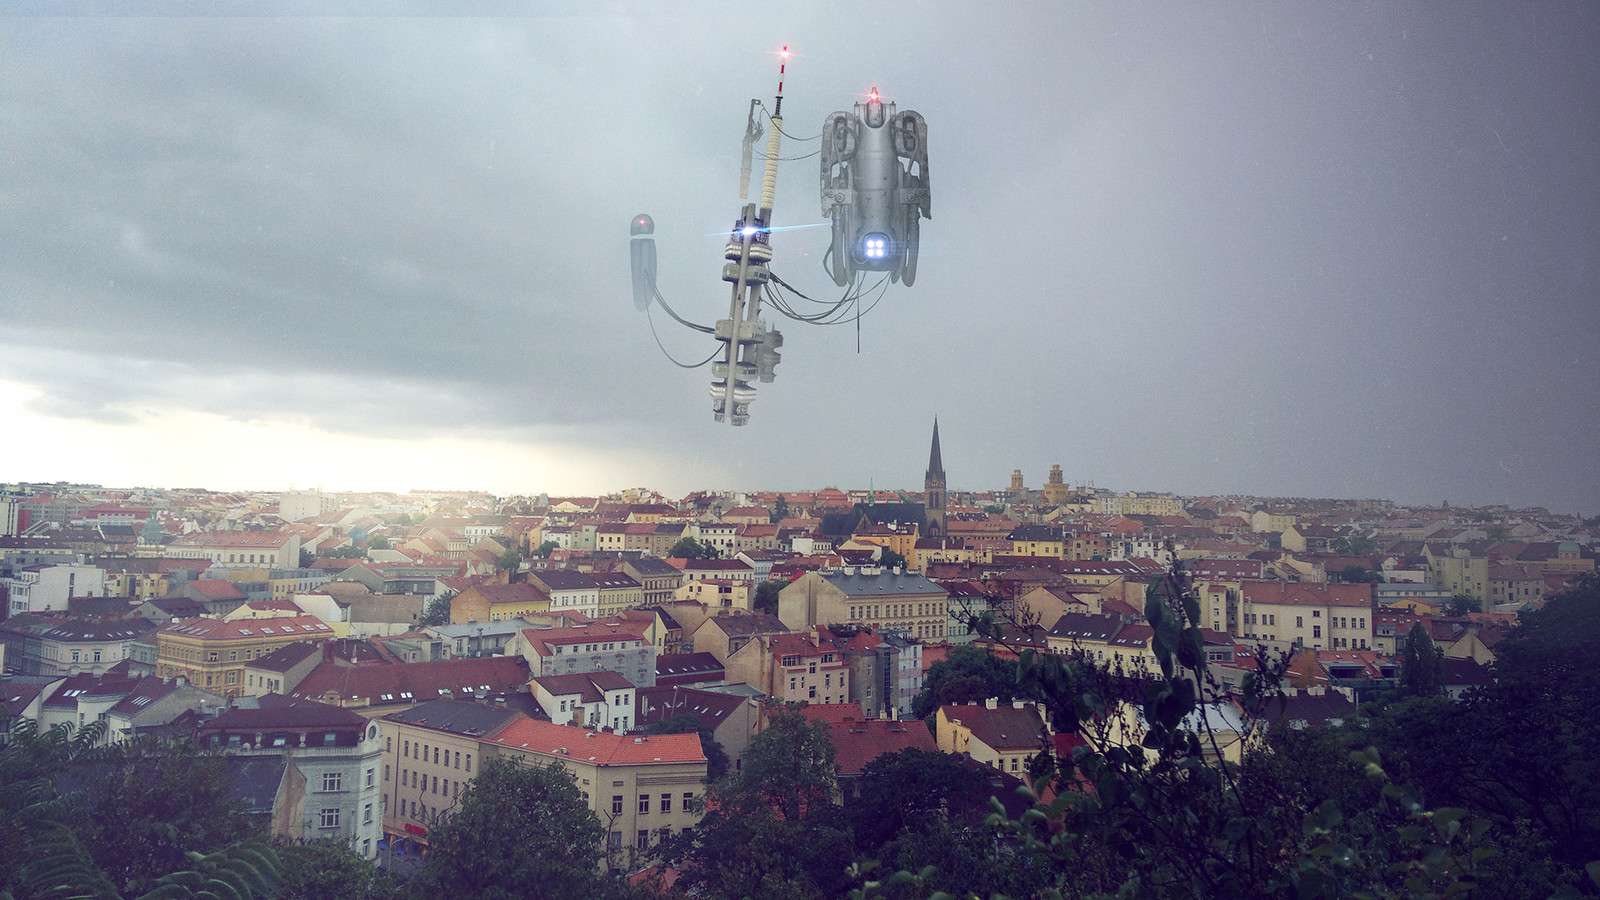 Aliens over Prague